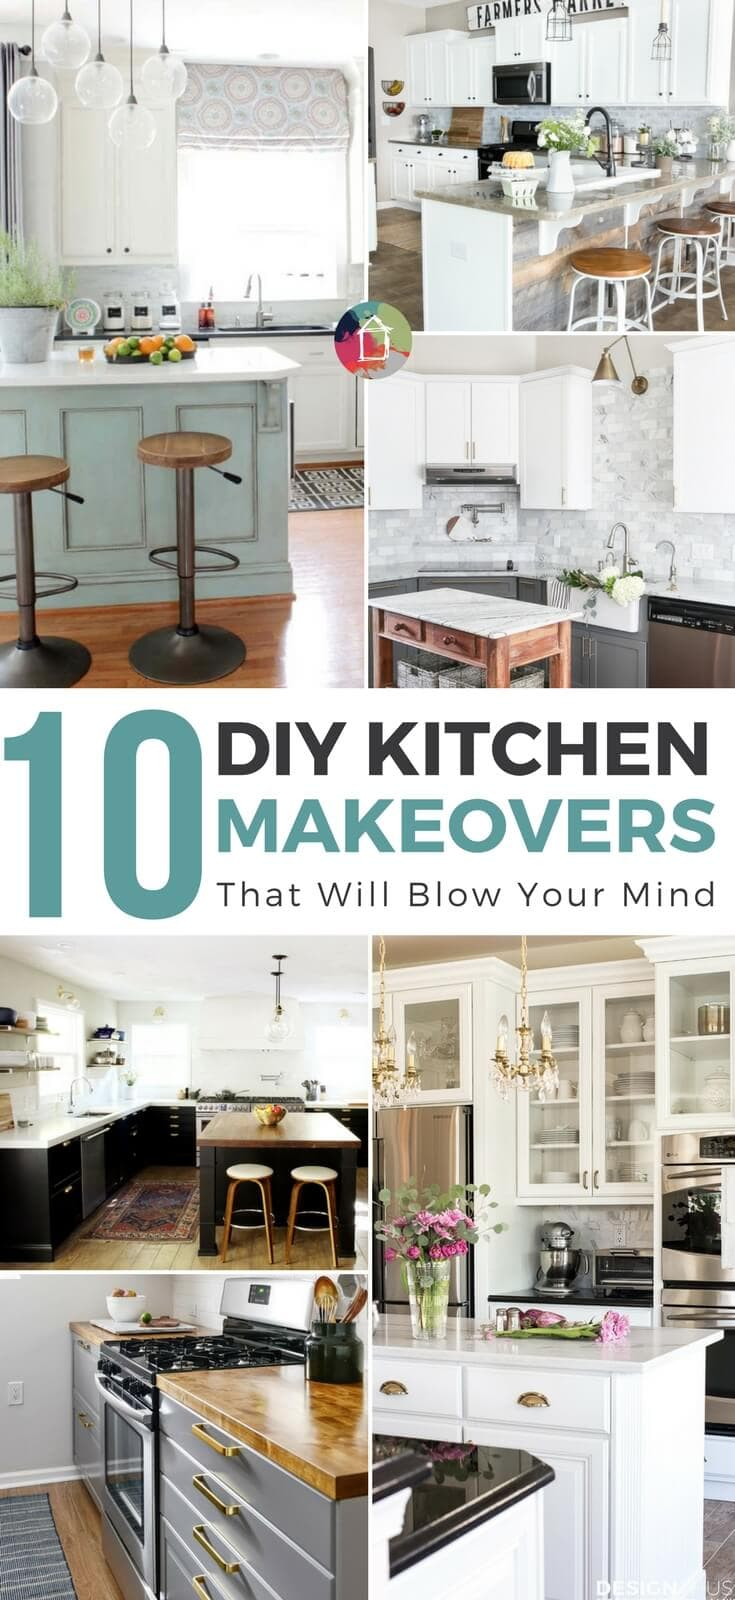 10 diy kitchen makeovers that will blow your mind designer trapped